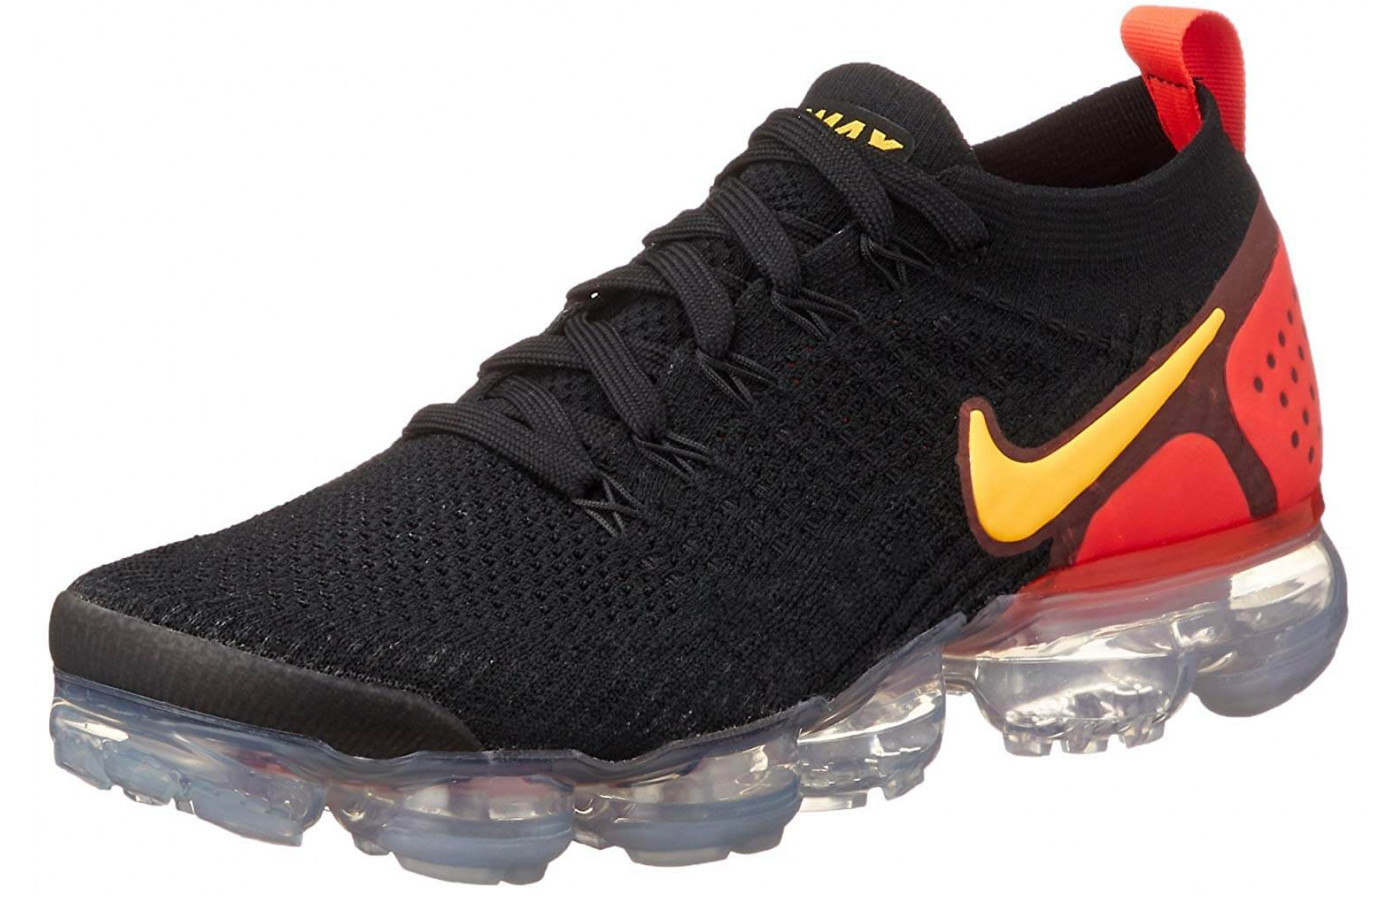 2d826613ba Nike Air VaporMax Flyknit 2 - Buy or Not in June 2019?